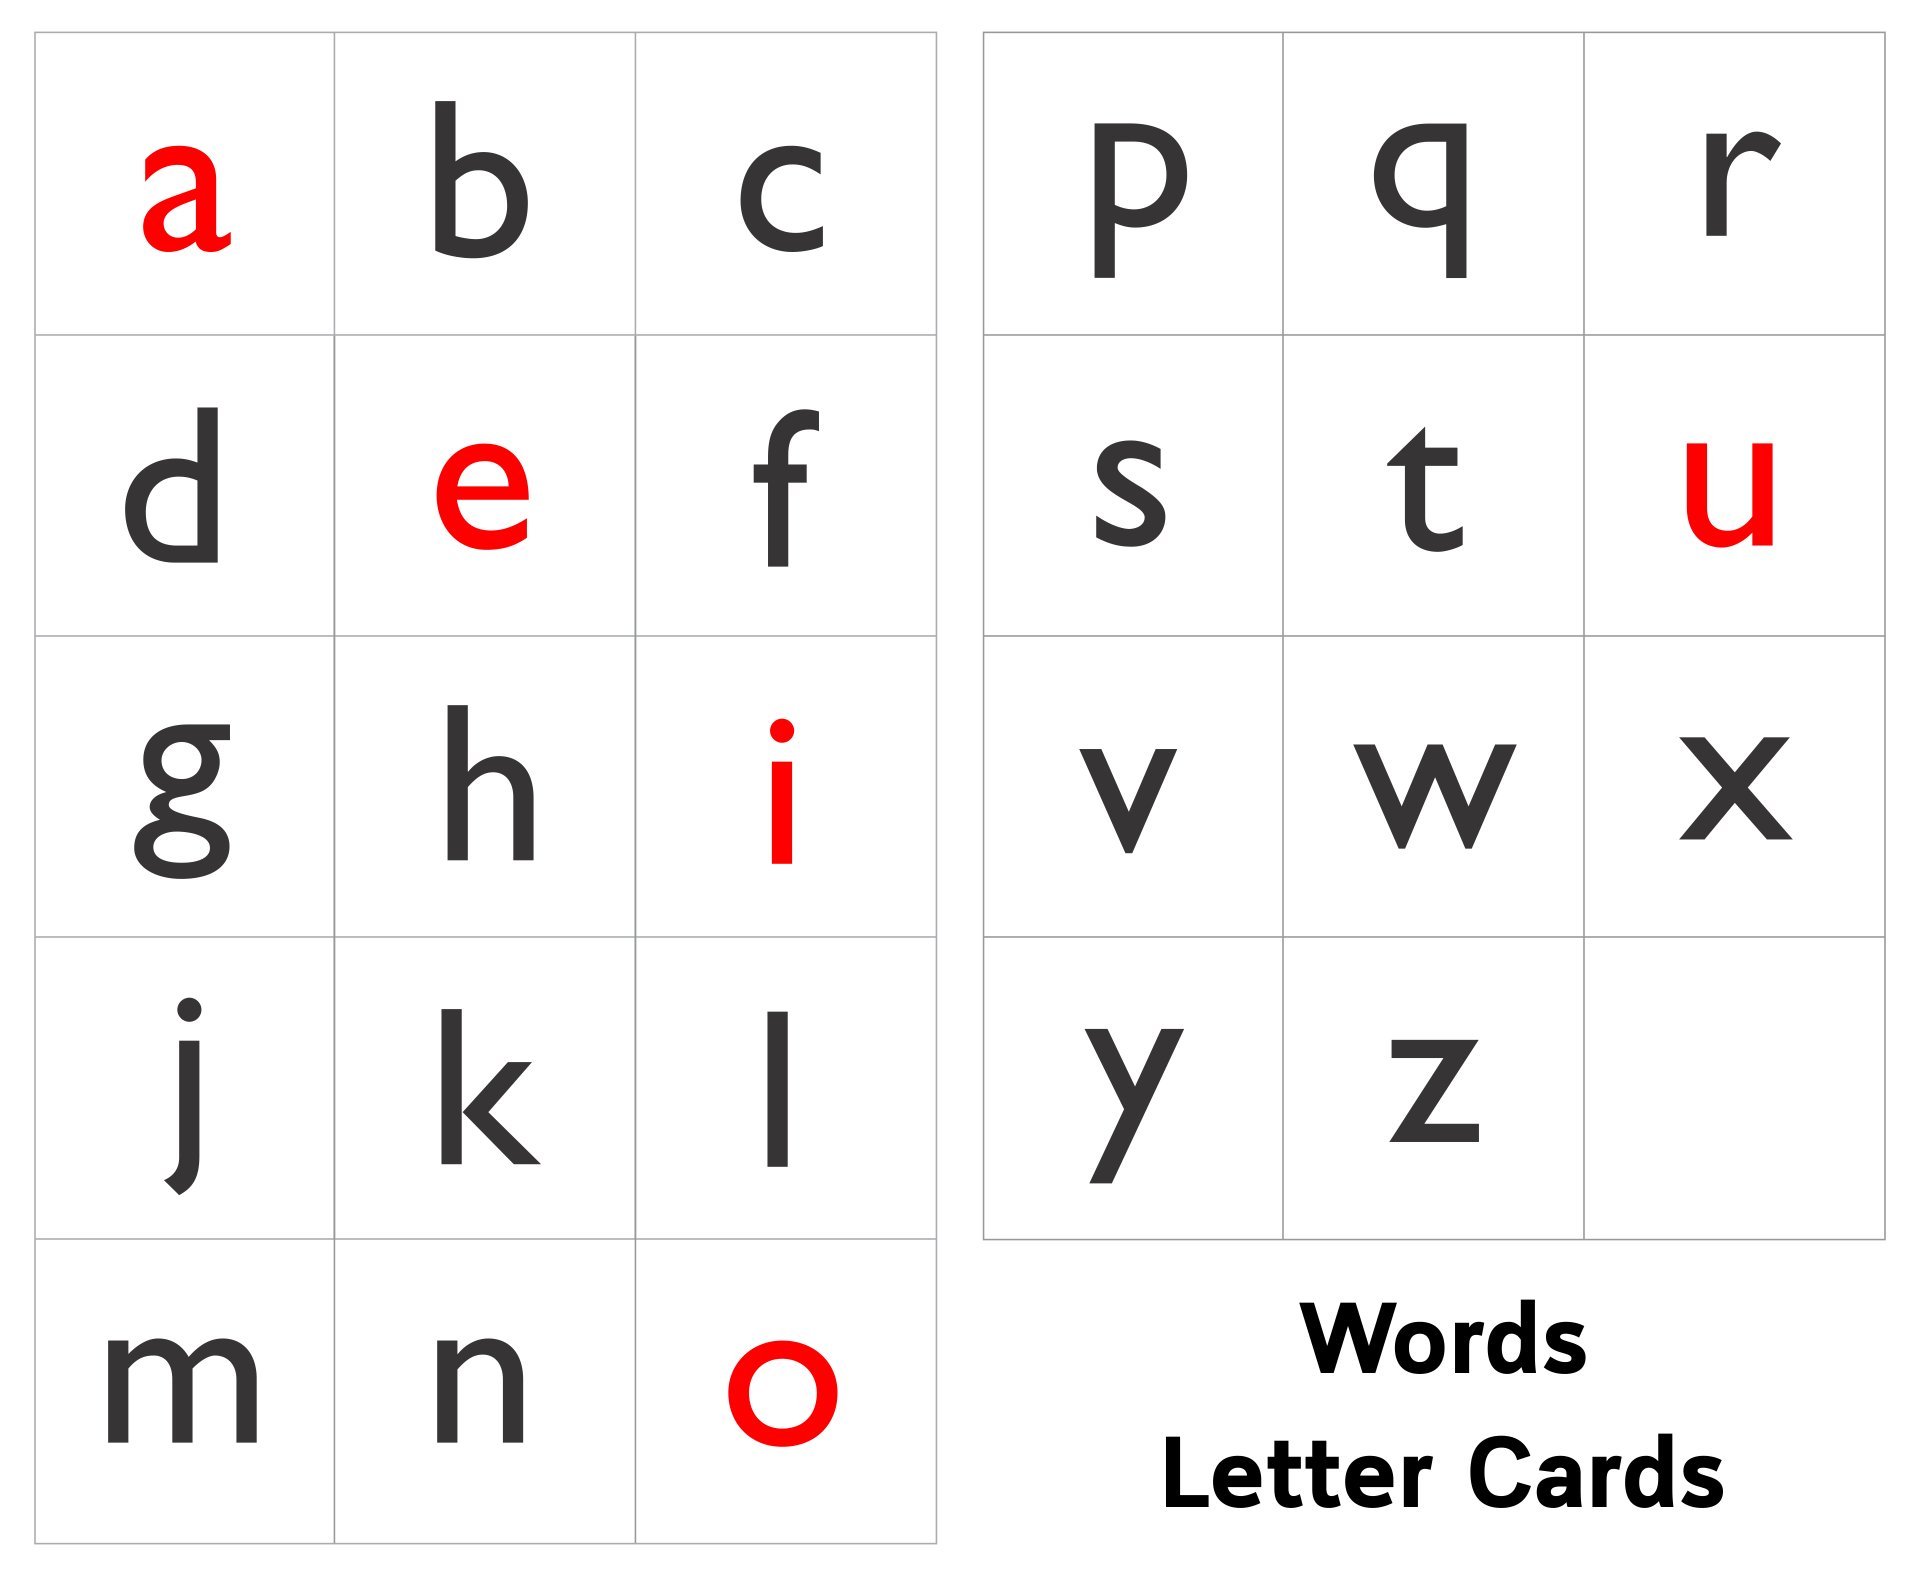 Making Words Letter Cards Printable